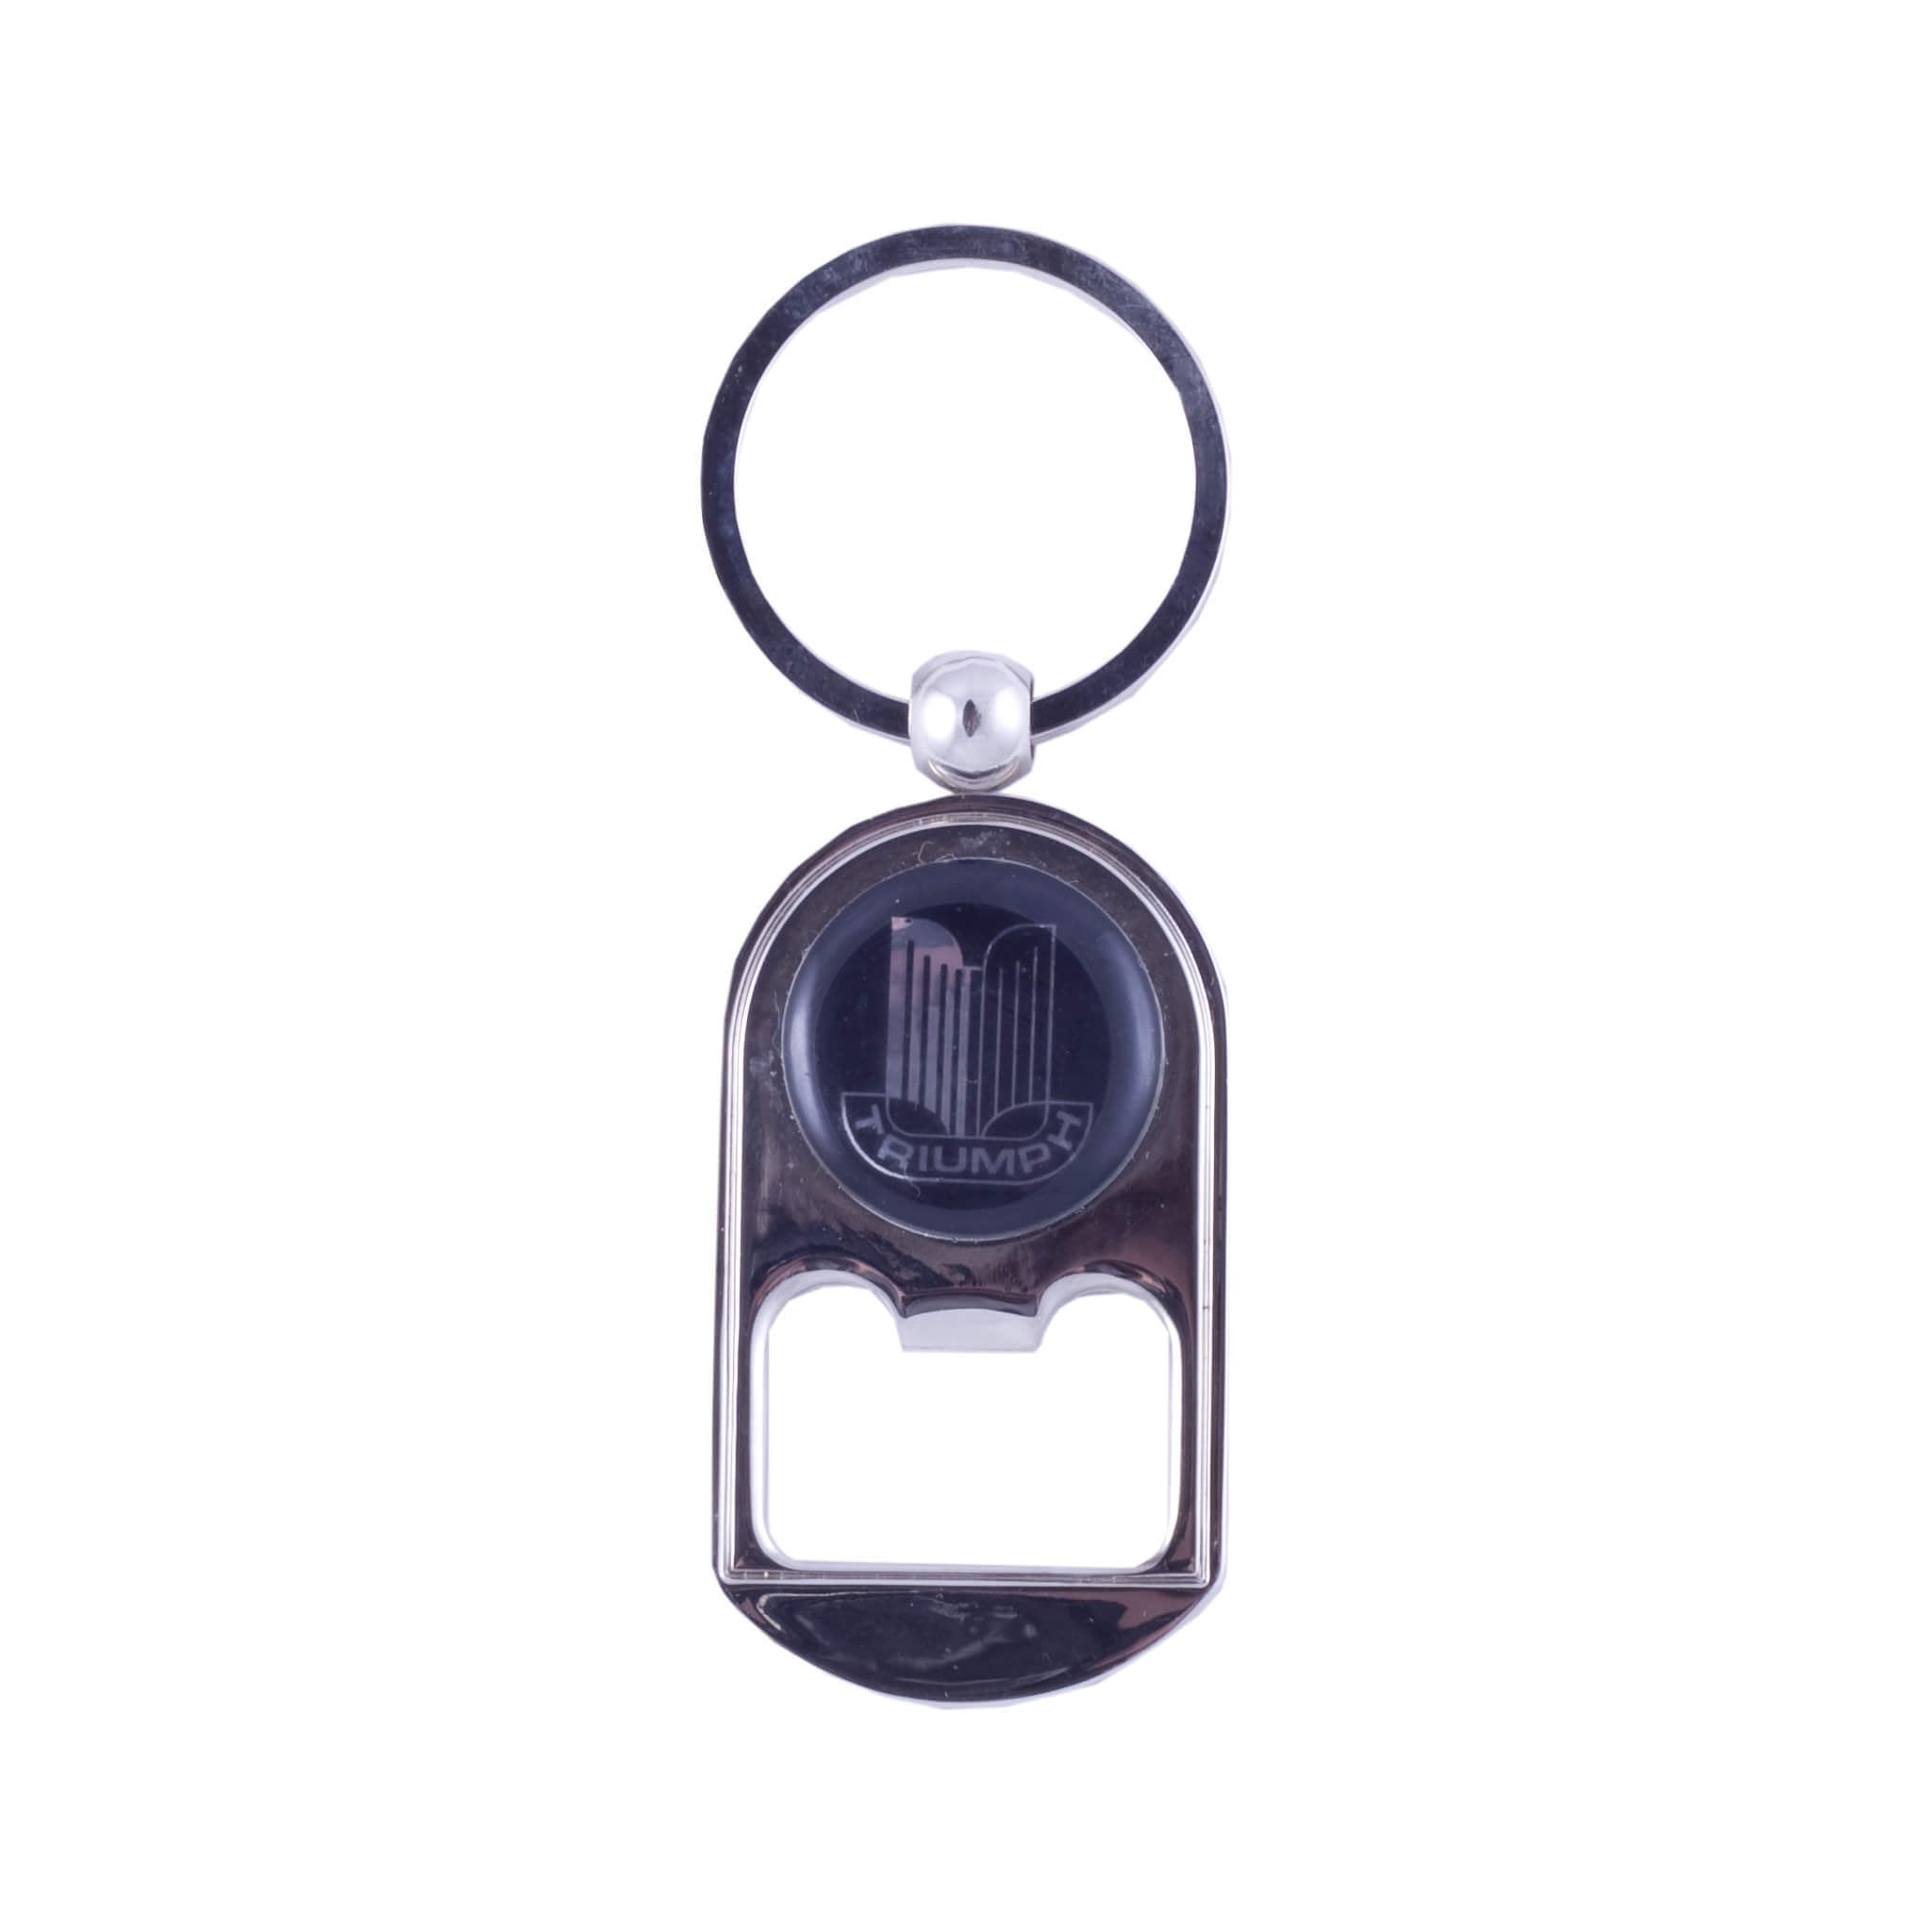 Triumph Keyring - Bottle Cap Opener Accessory